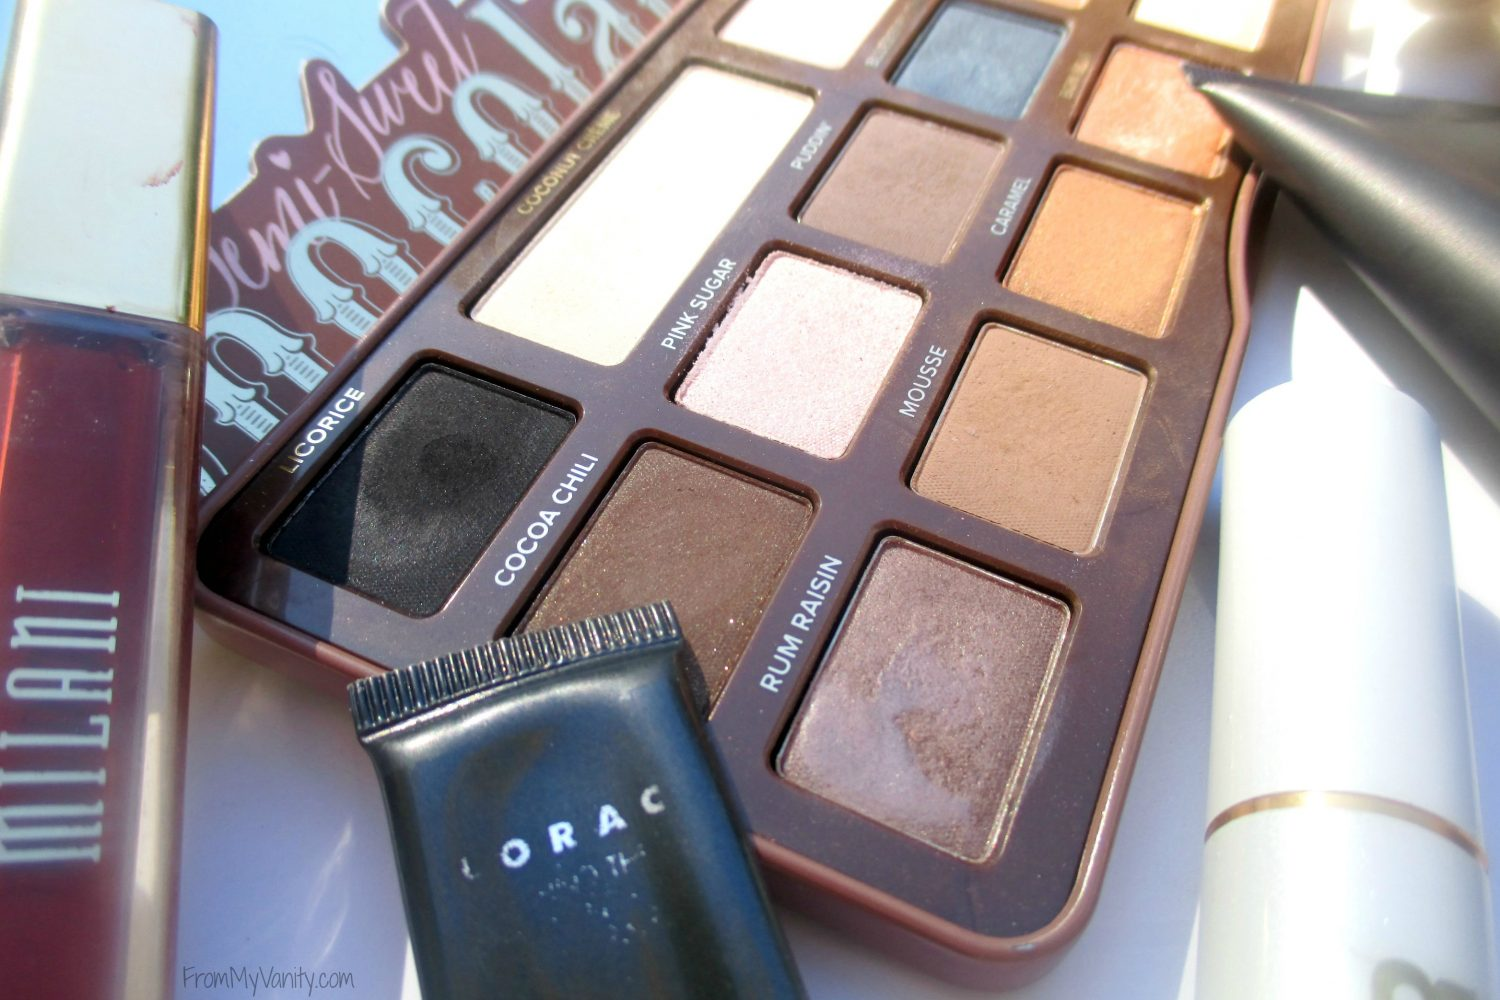 Fall-Inspired Face of the Day // featuring Too Faced Semi-Sweet Chocolate Bar Palette // Close up of Palette // #bbcchallenge #fotd #toofaced FromMyVanity.com